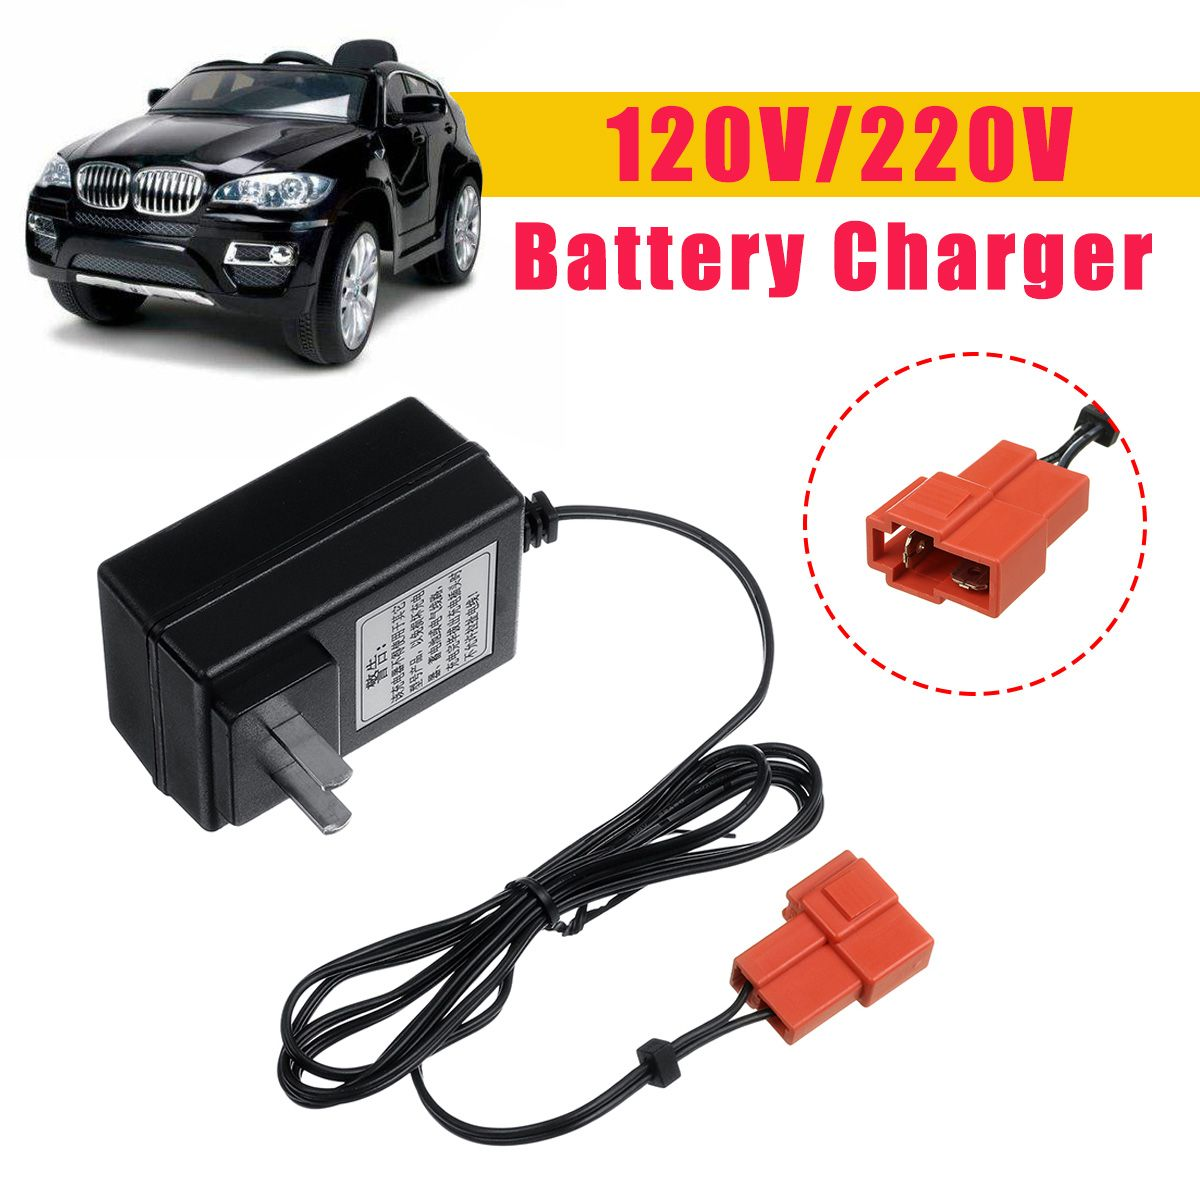 7V 0.8A AC120V/220V Battery Charger AC Adapter for Toy Car Children Kids TRAX ATV Quad Ride On Car R